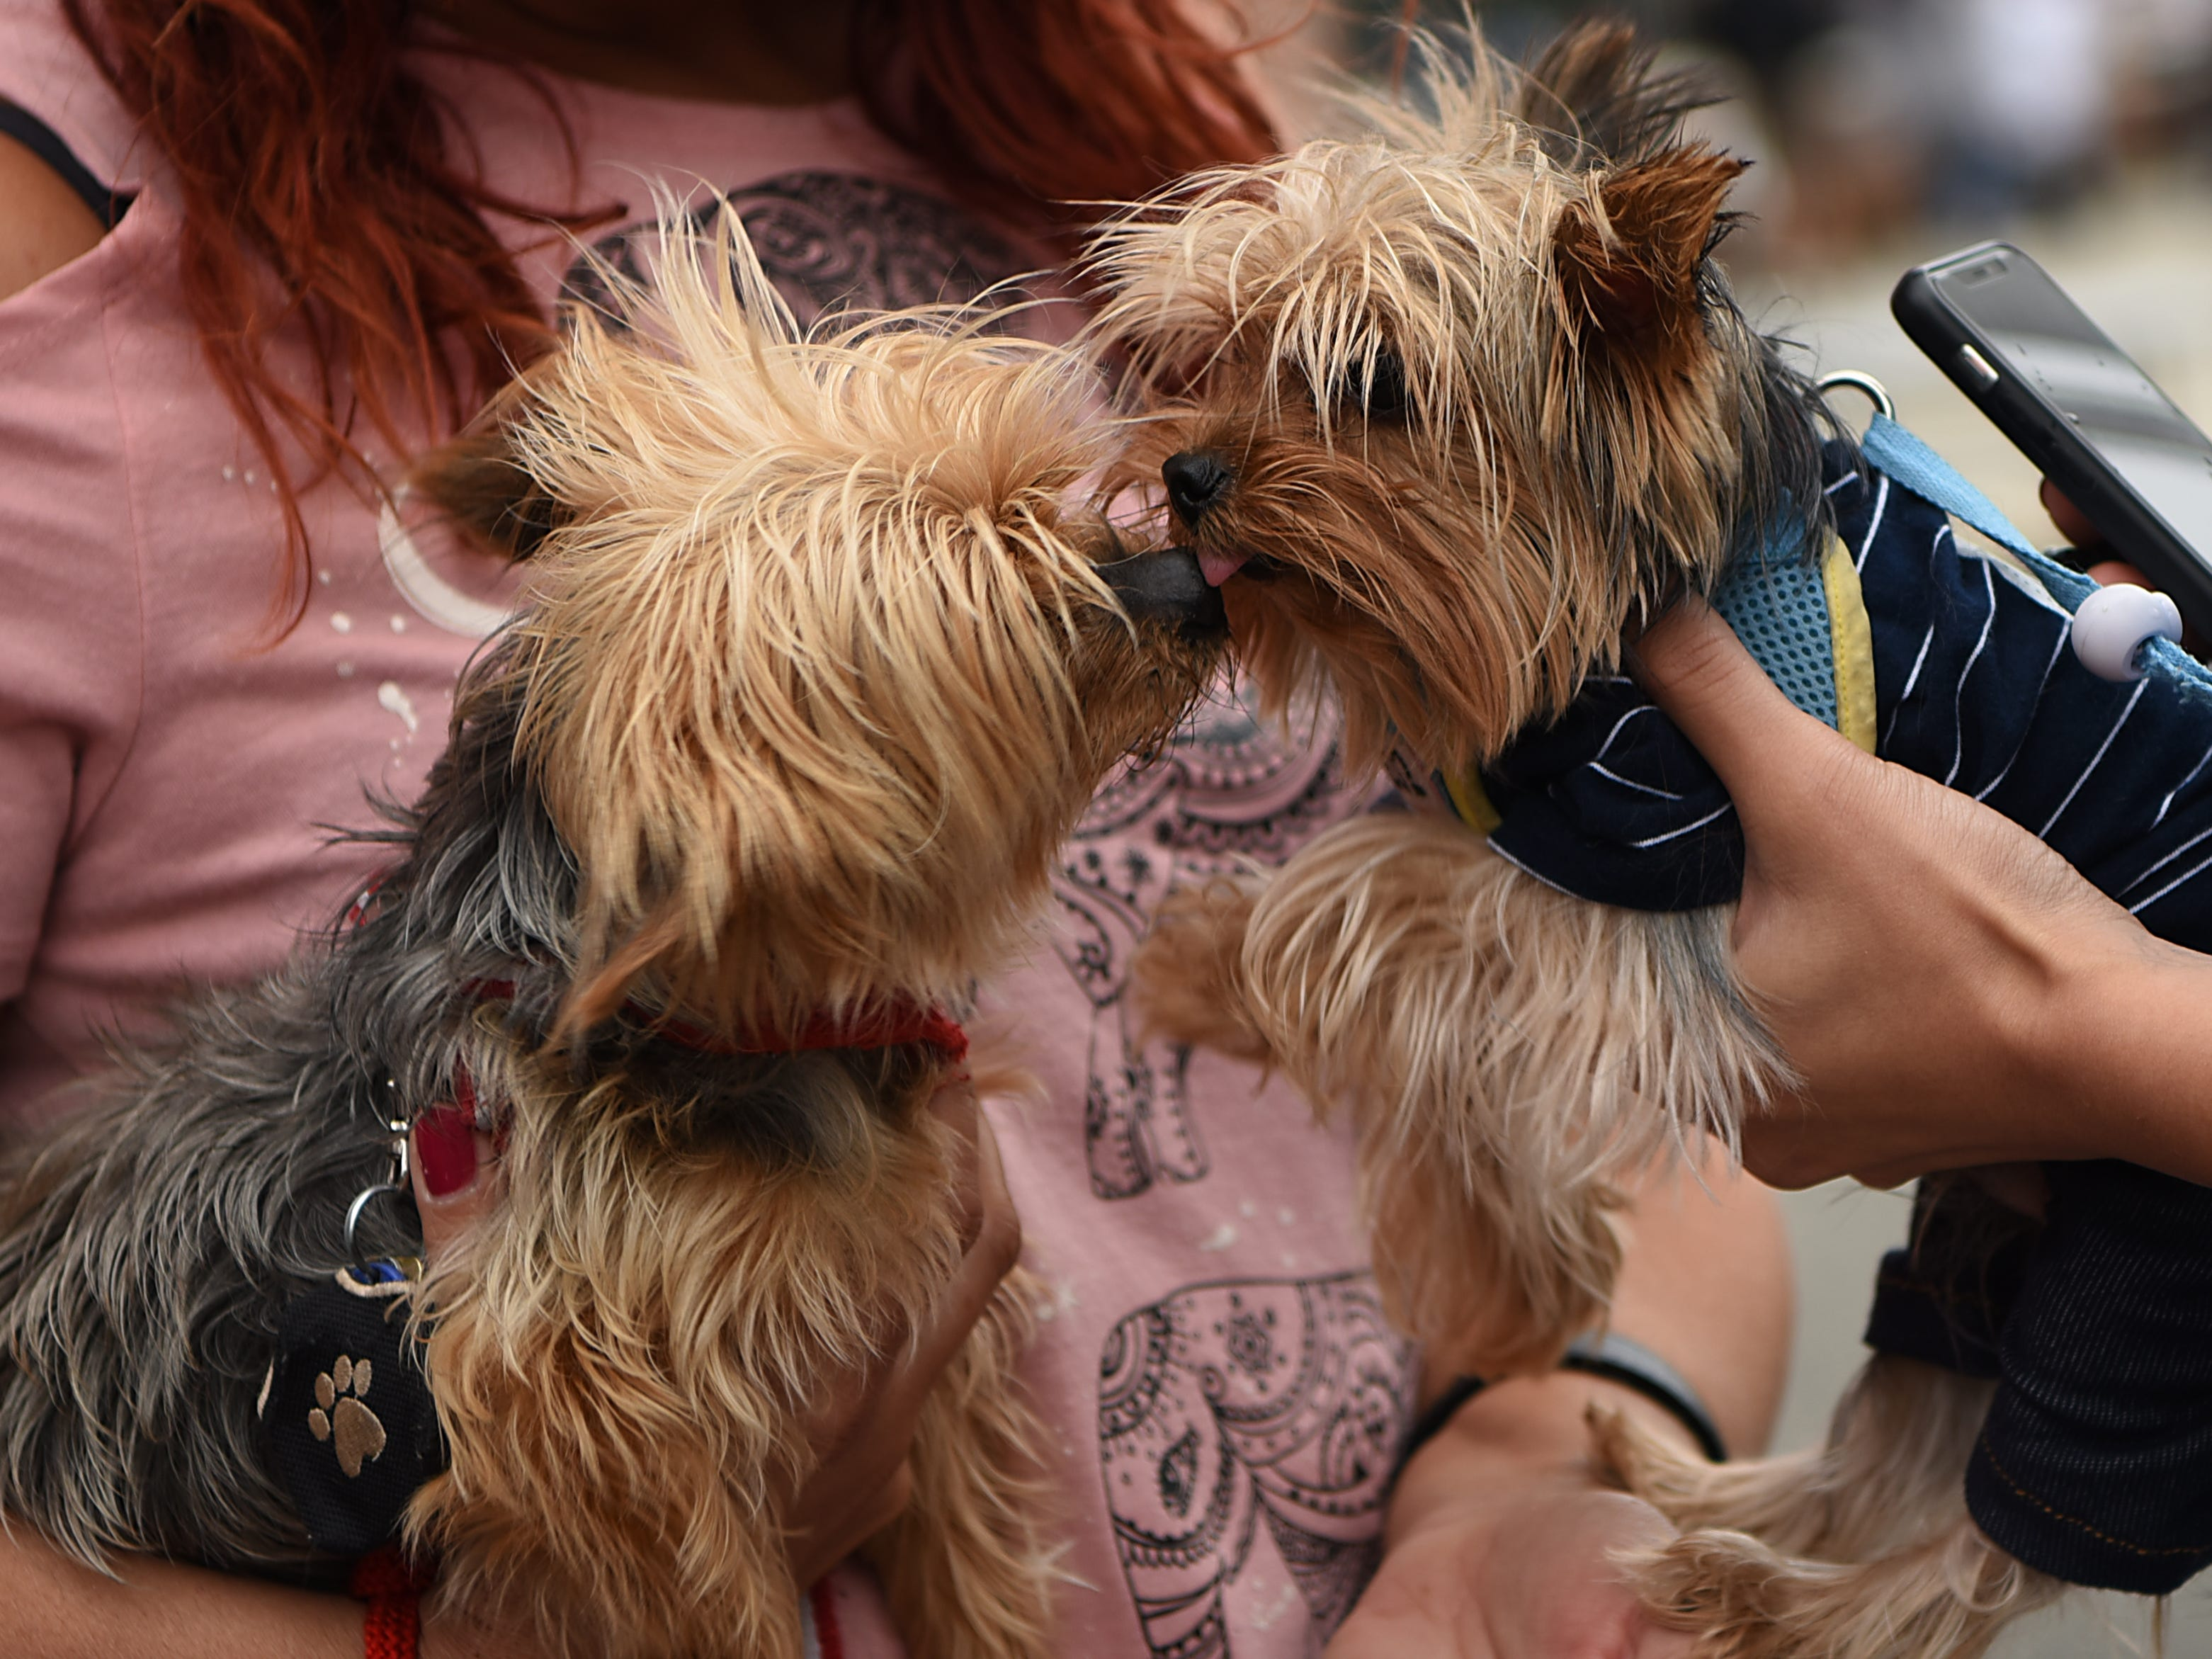 Two Yorkies greet one another at Woofstock 2018, a benefit for Bergen County animal rescue organizations, at City Place in Edgewater on Saturday September 8, 2018.